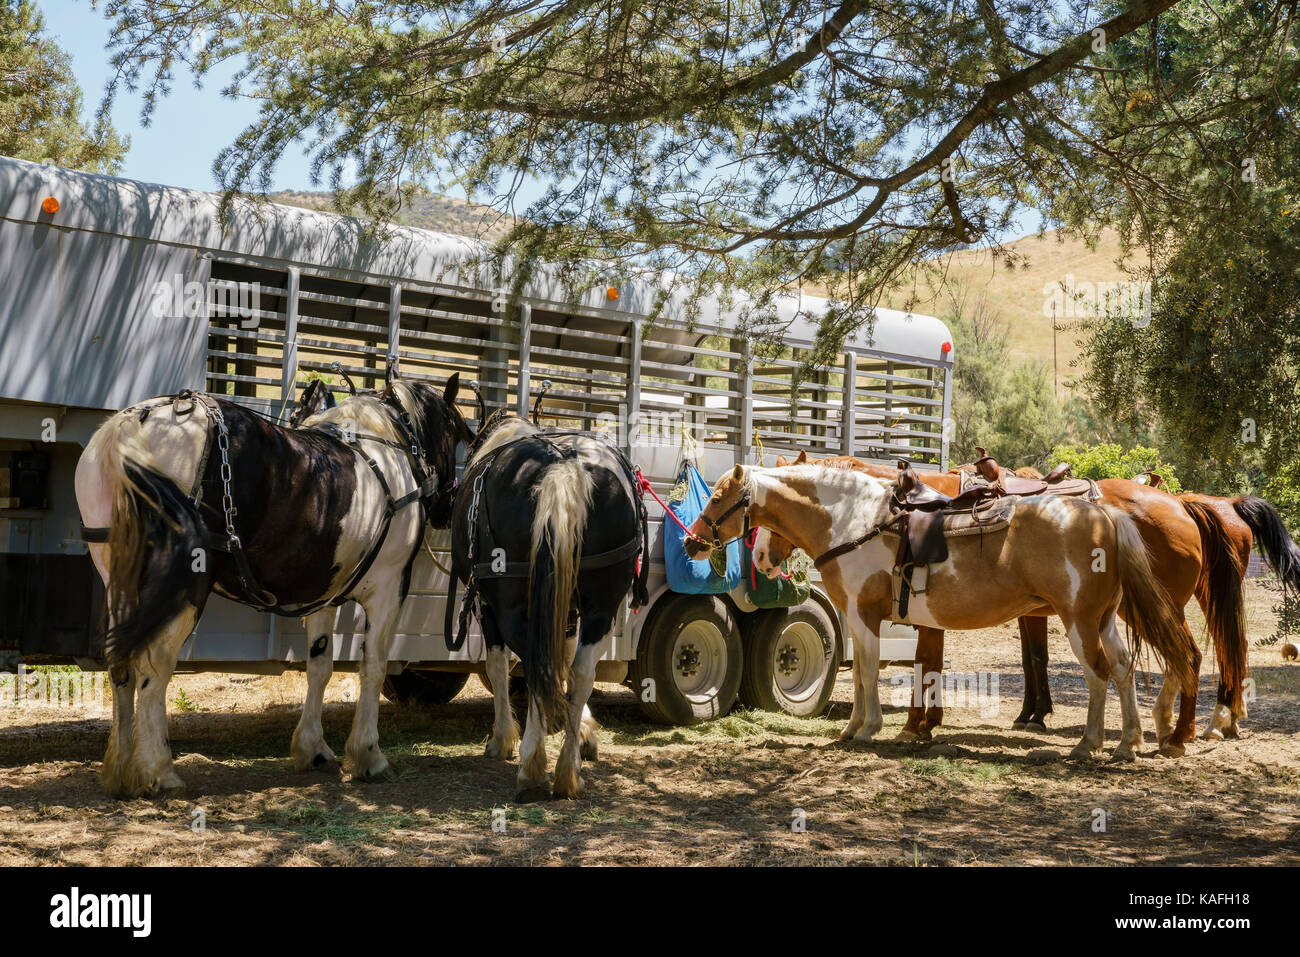 Horses of Lavender Festival of 123 Farm at San Bernardino, Los Angeles County, United States - Stock Image